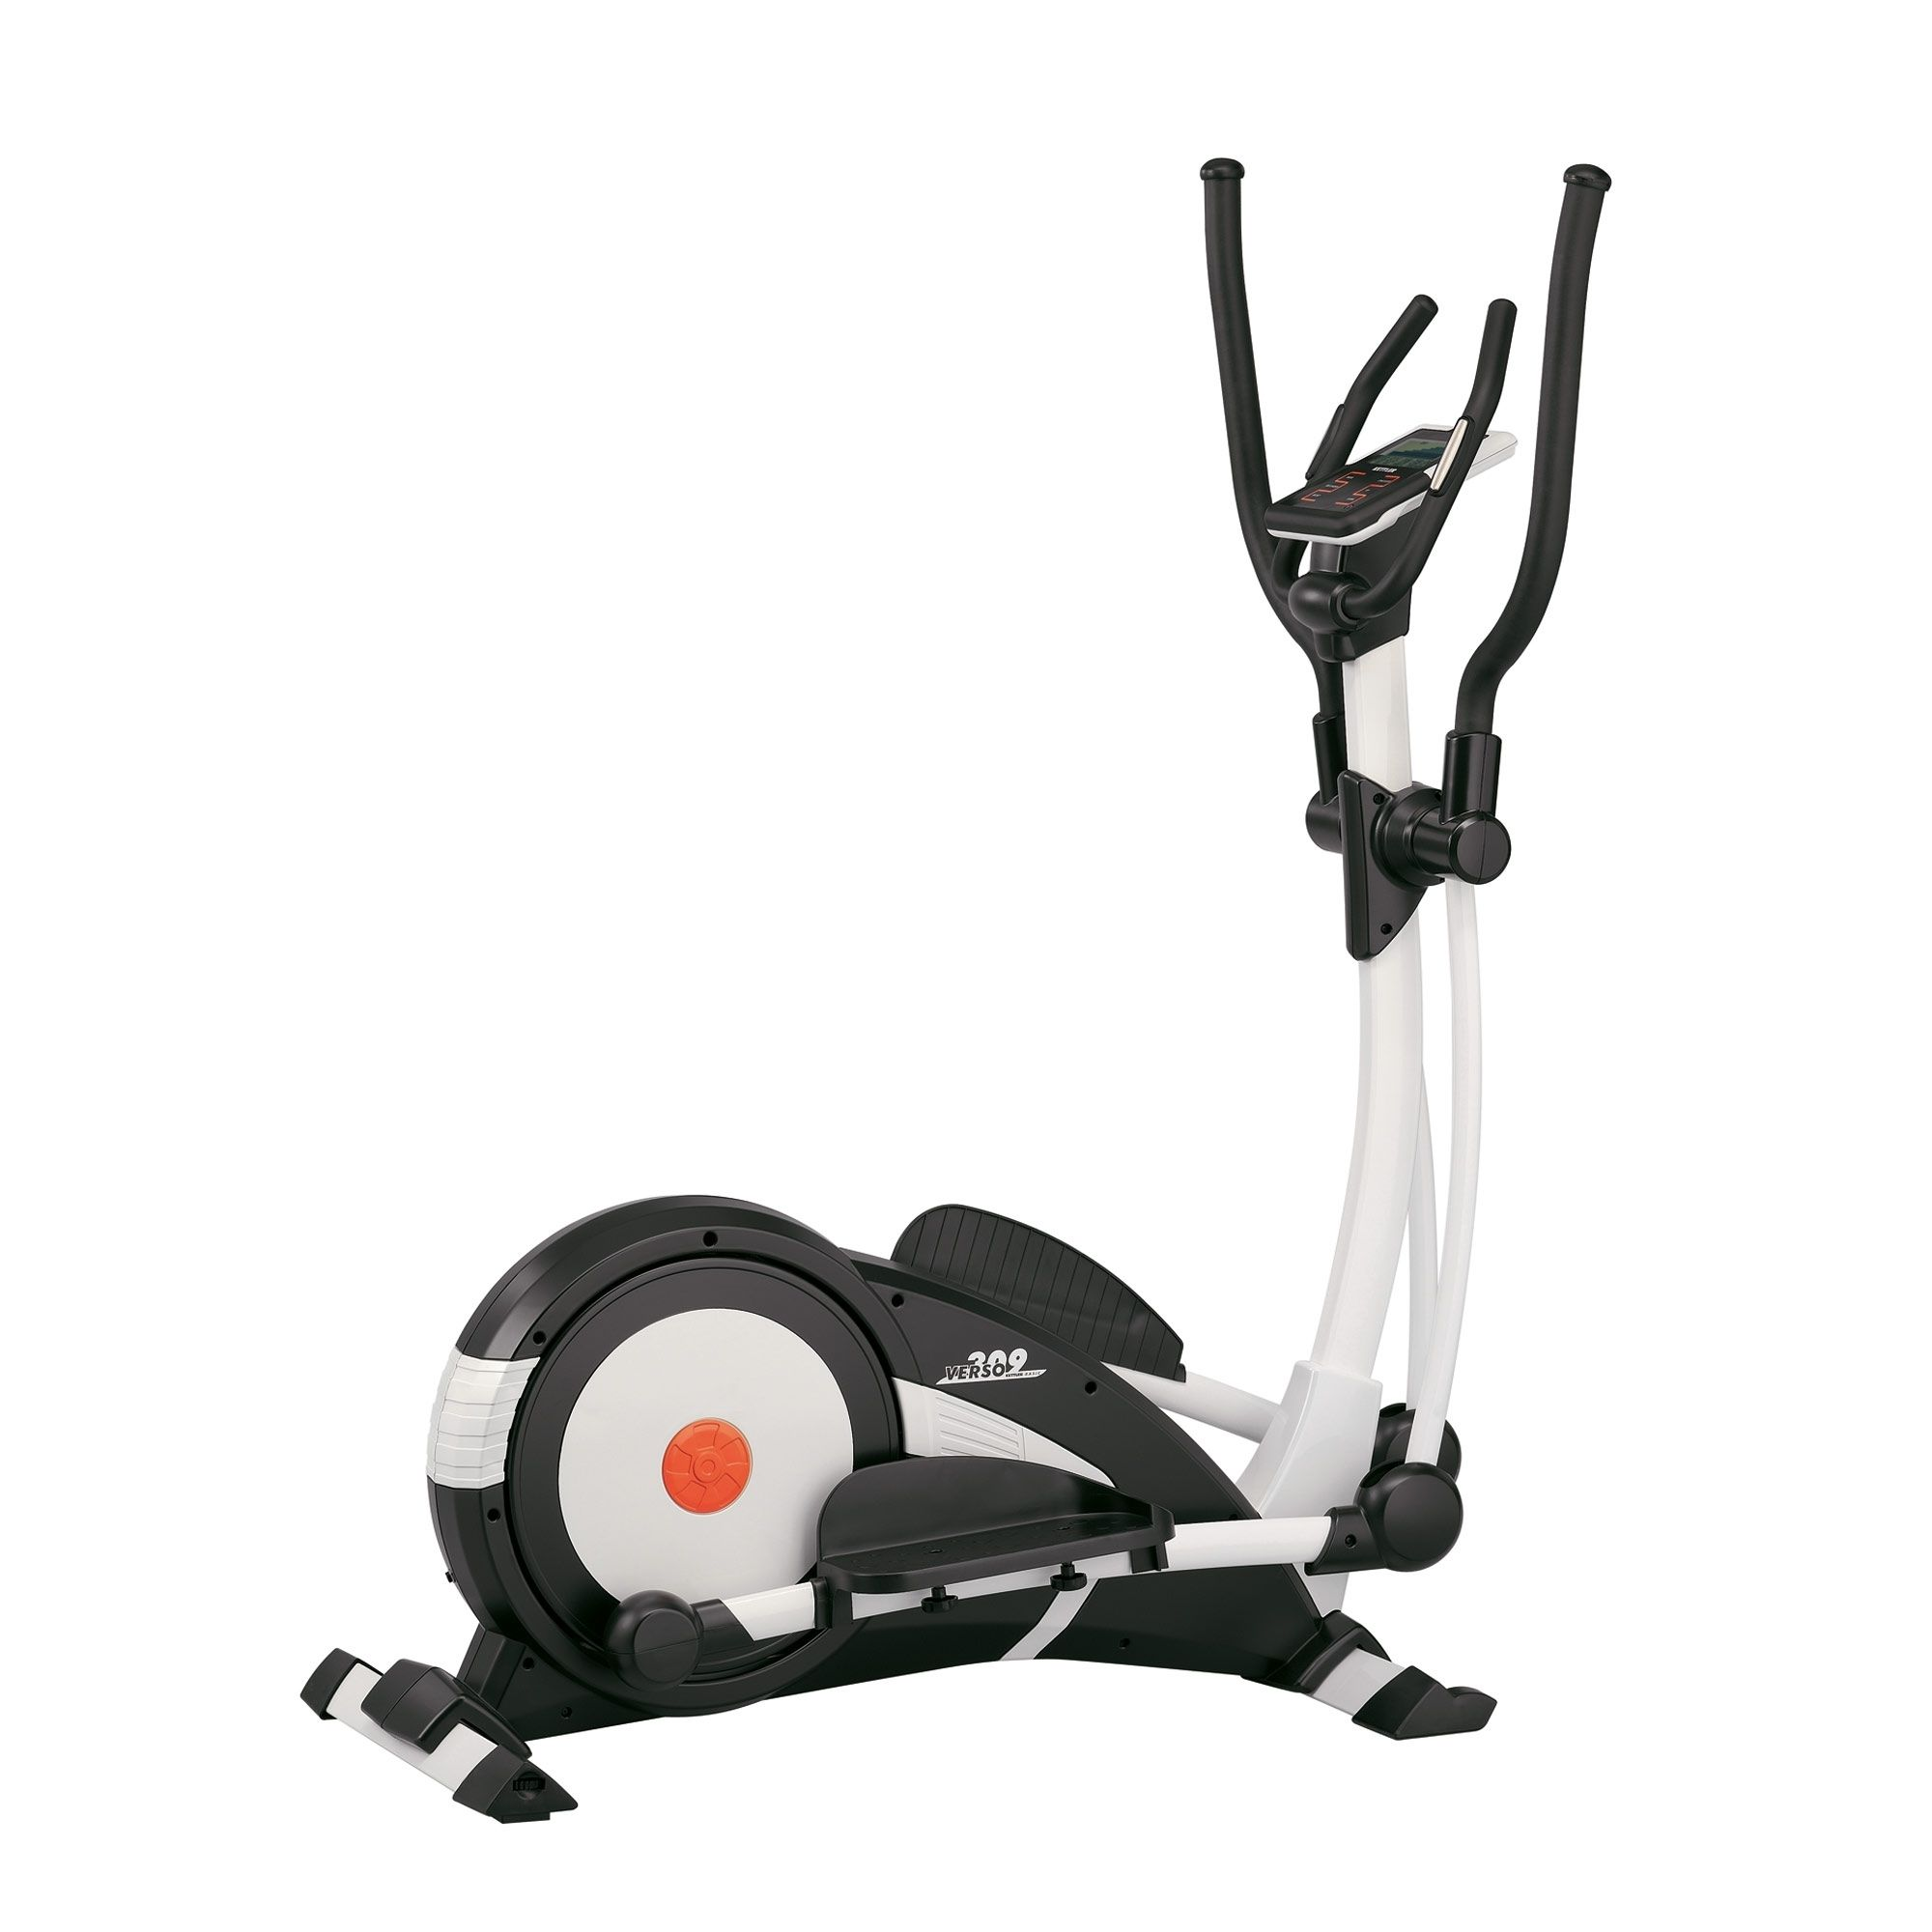 Kettler Fitness Kettler Verso 309 Elliptical Cross Trainer Sweatband